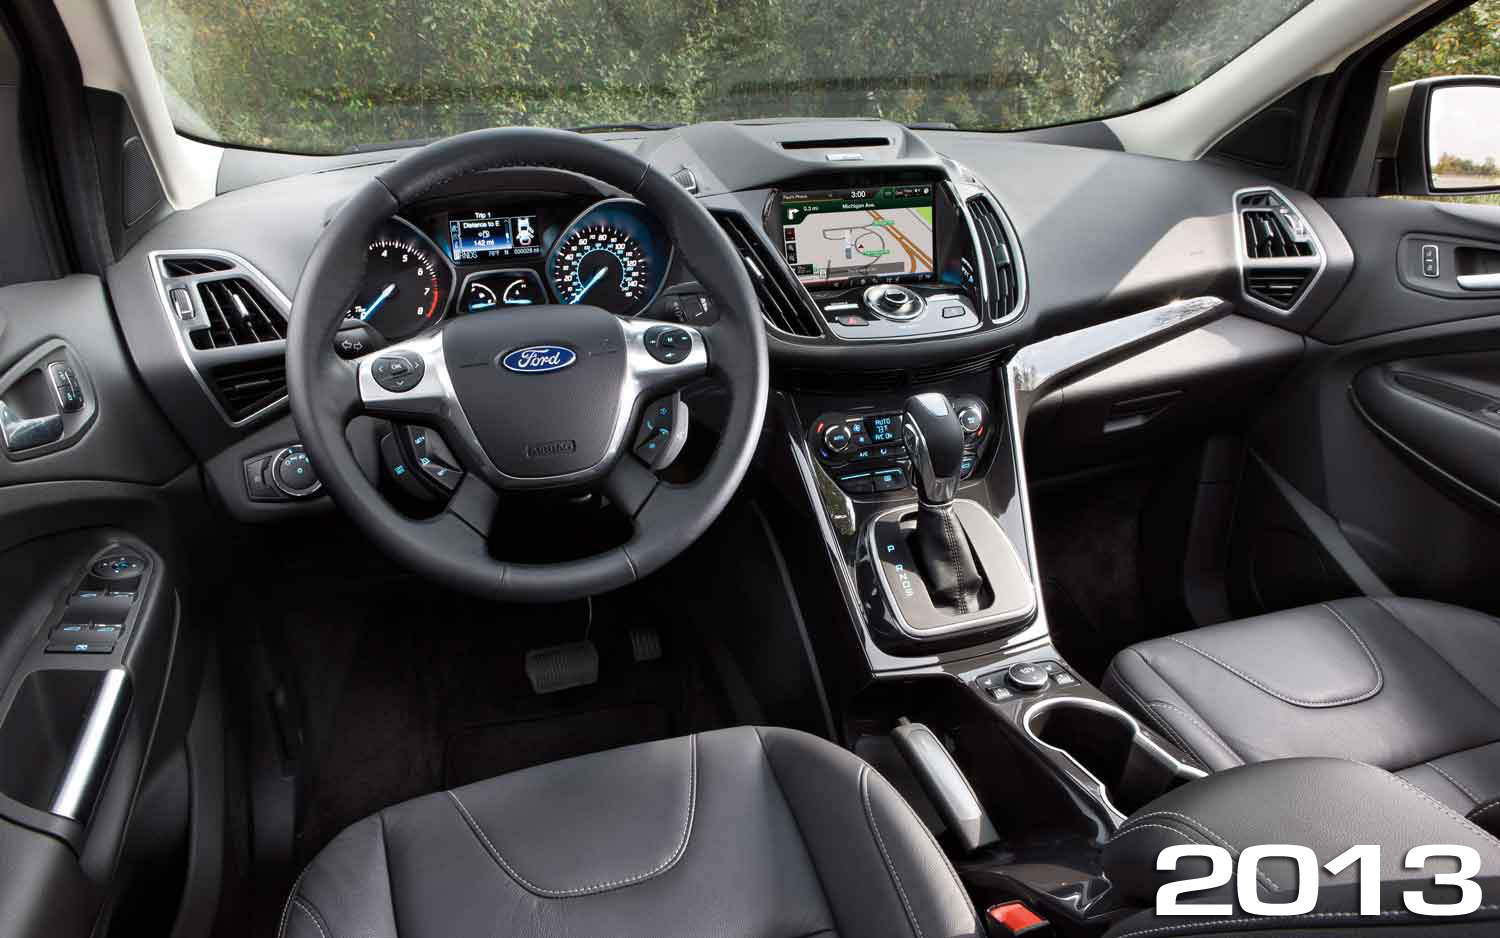 2013 Ford Escape Review Interior, Exterior, Price and Engine.:The list